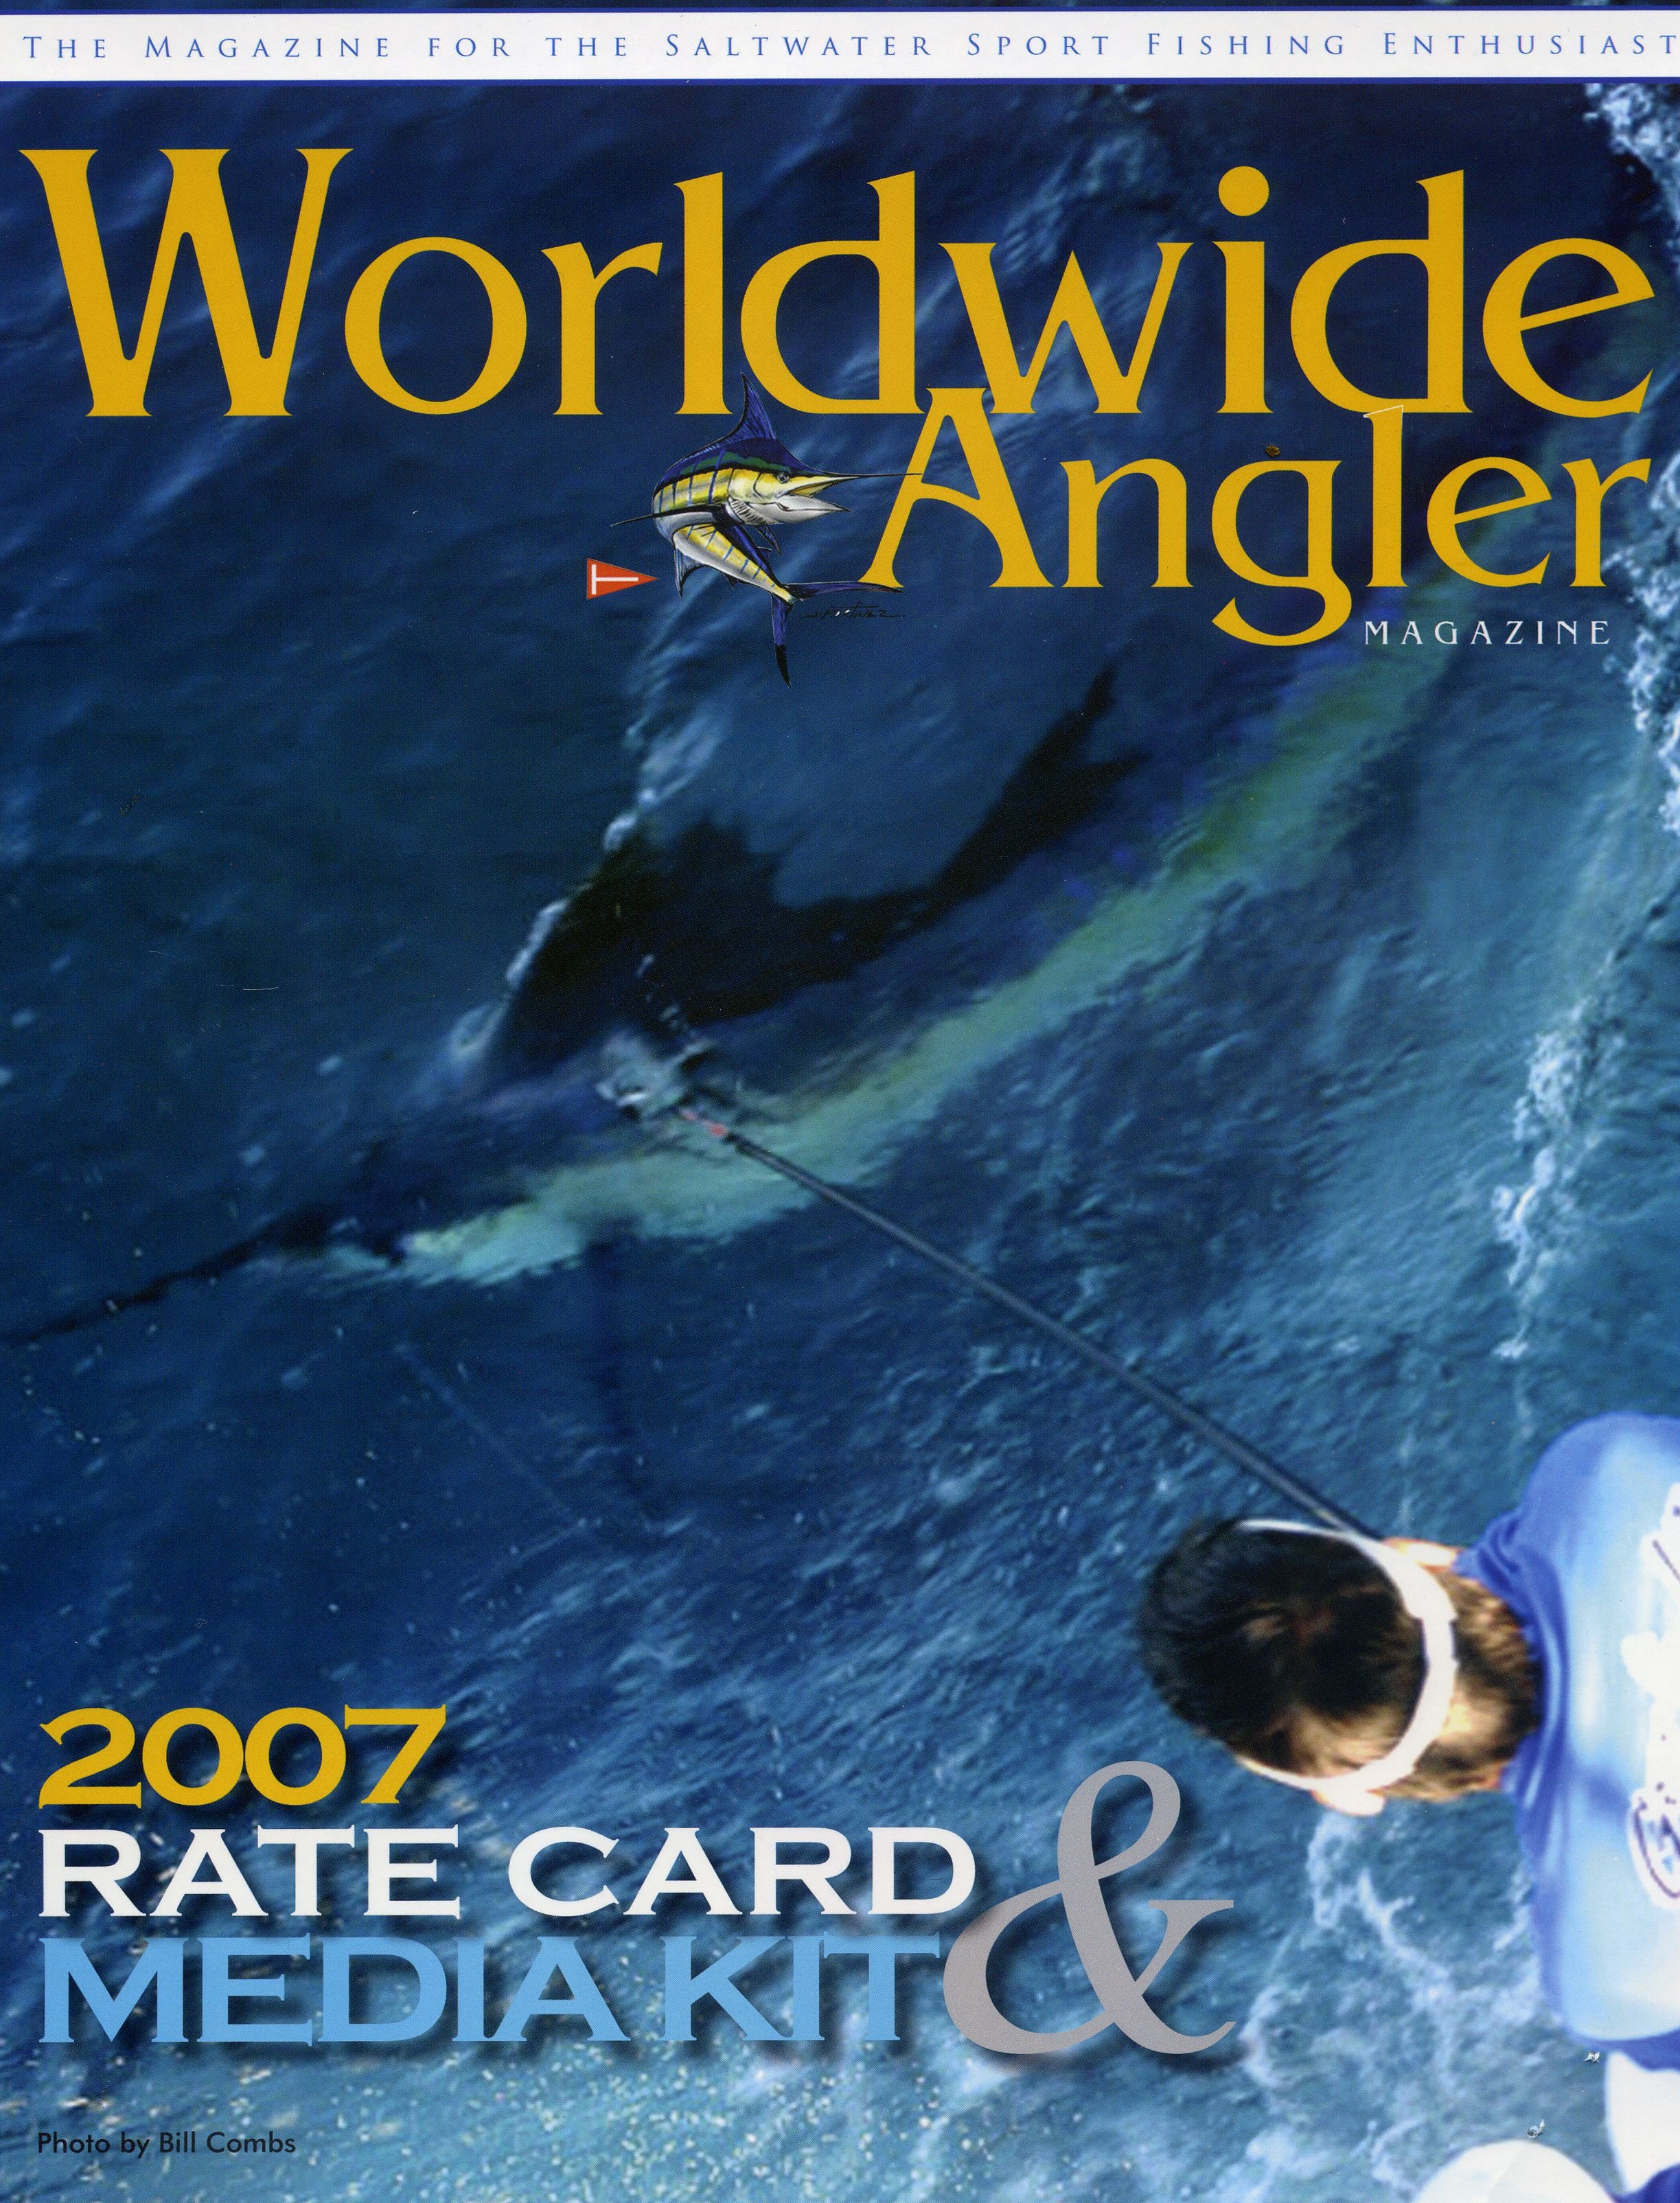 world wide angler magazine cove_1